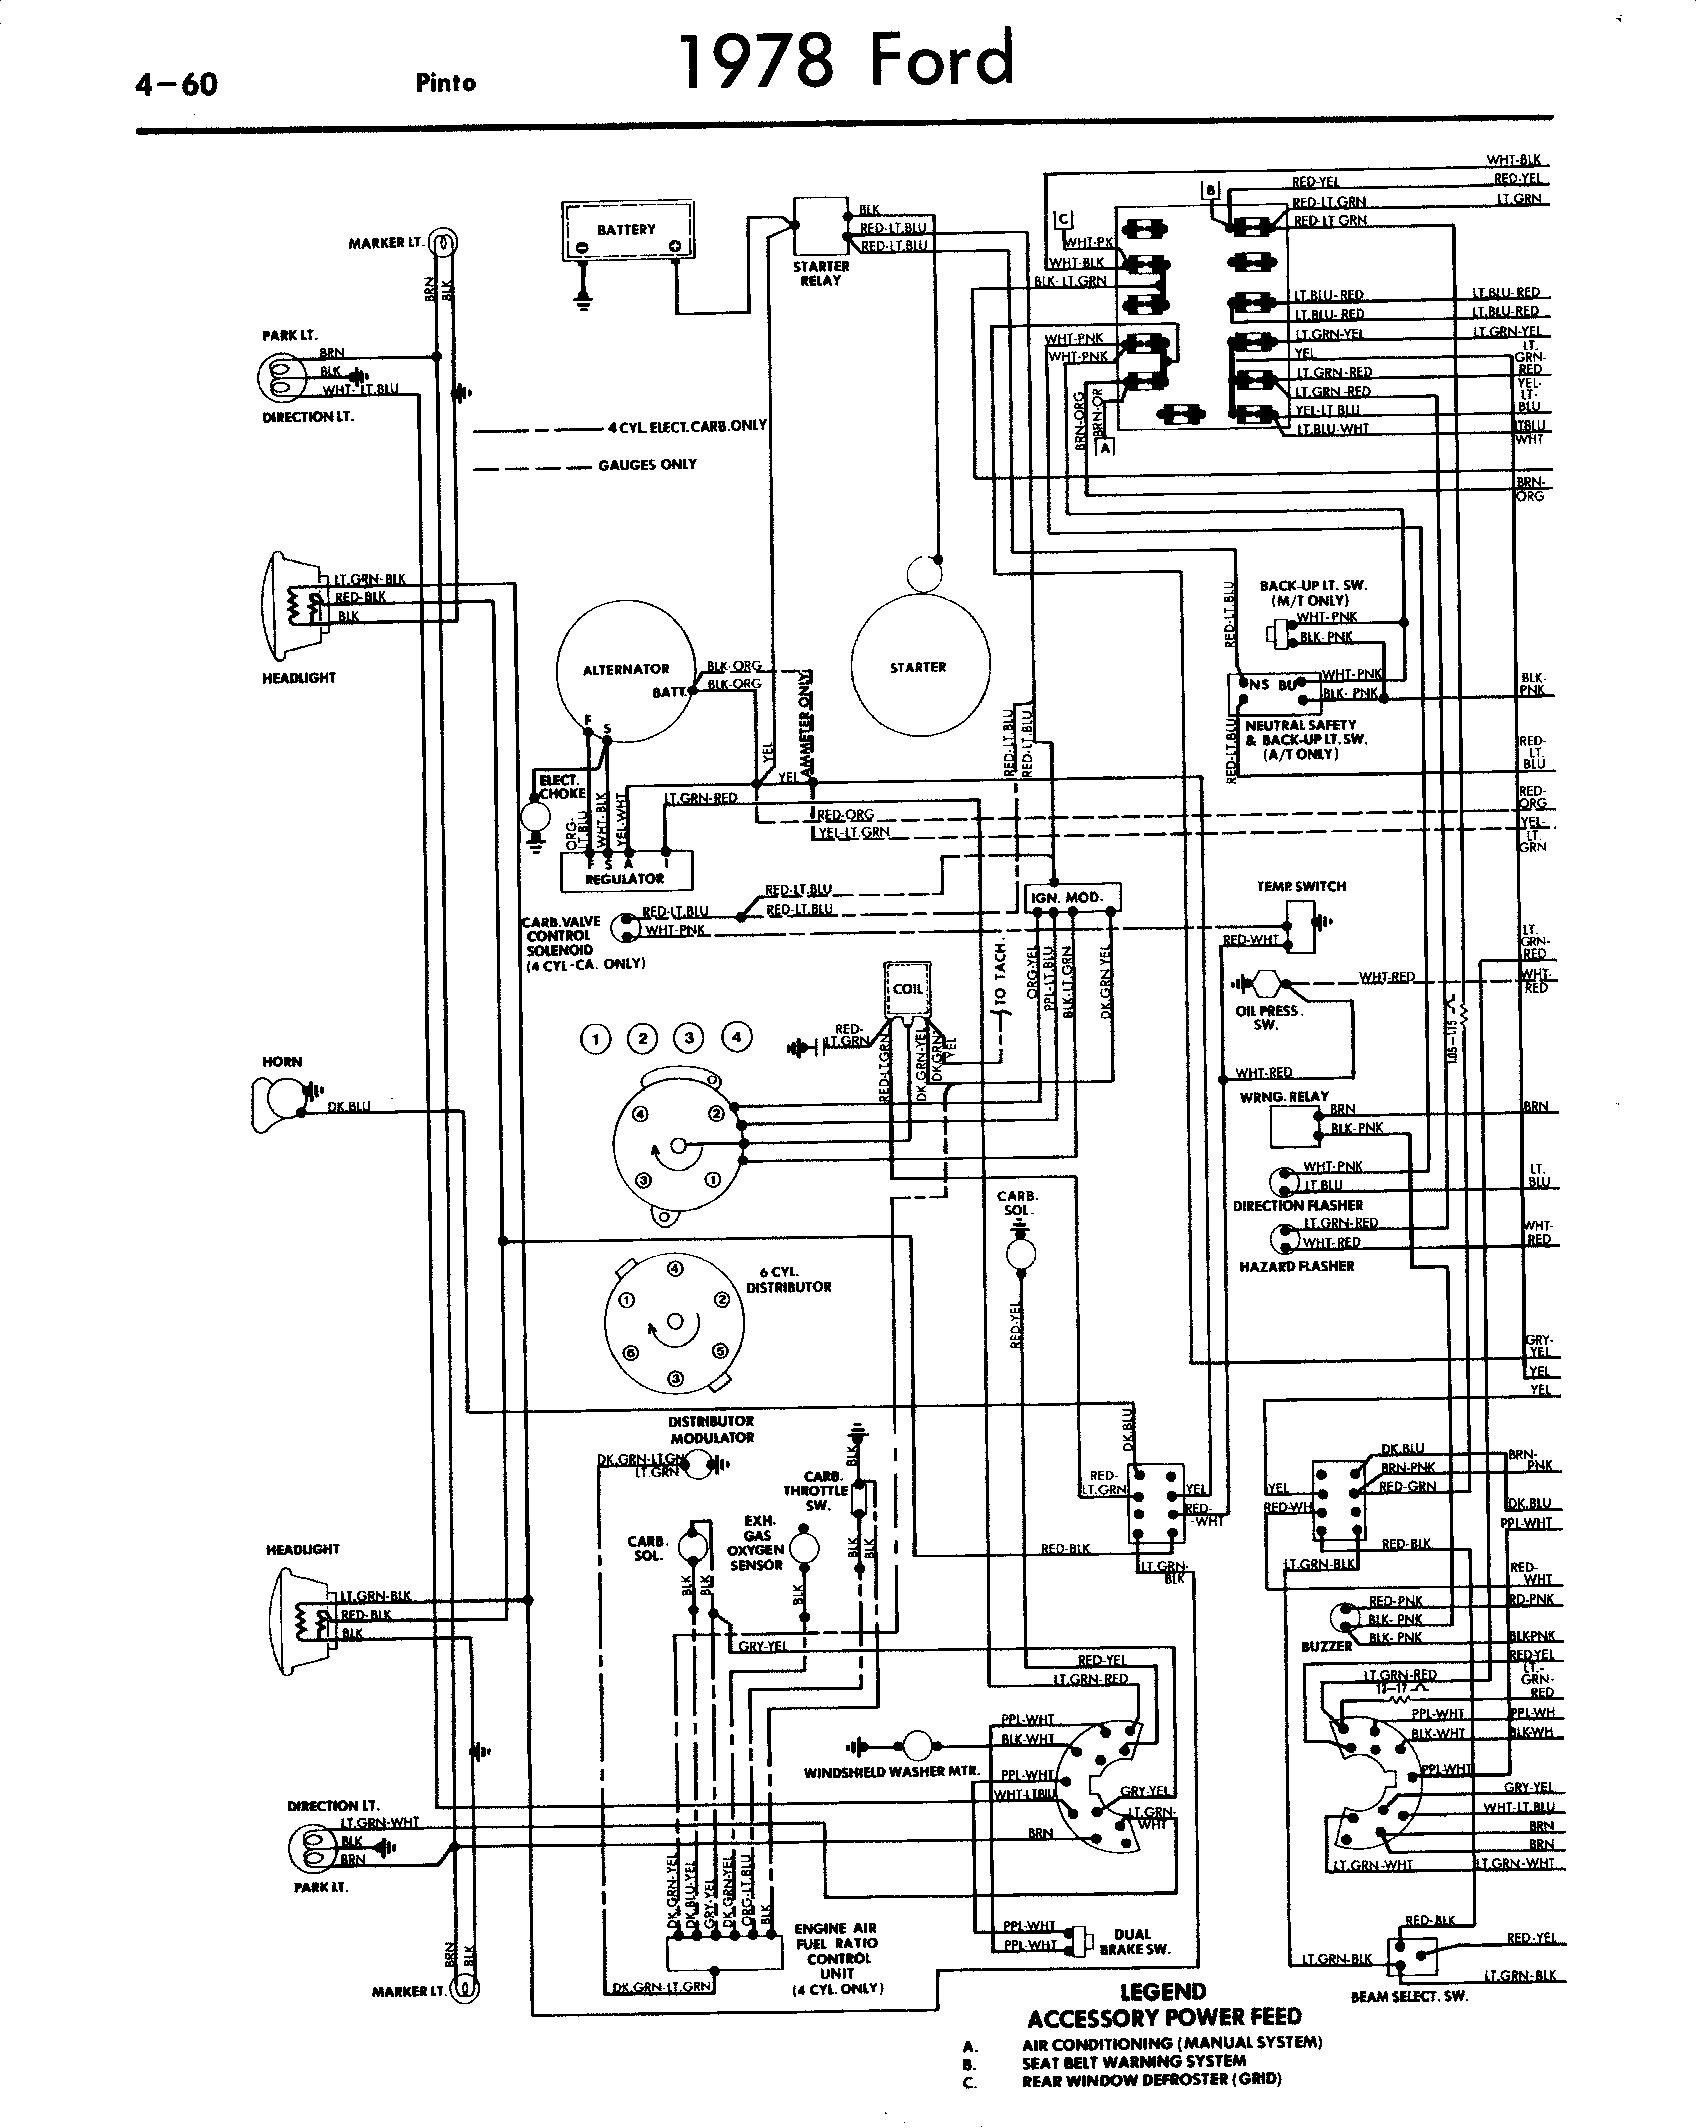 2003 Ford 4 0 Sohc Engine Diagram • Wiring Diagram For Free